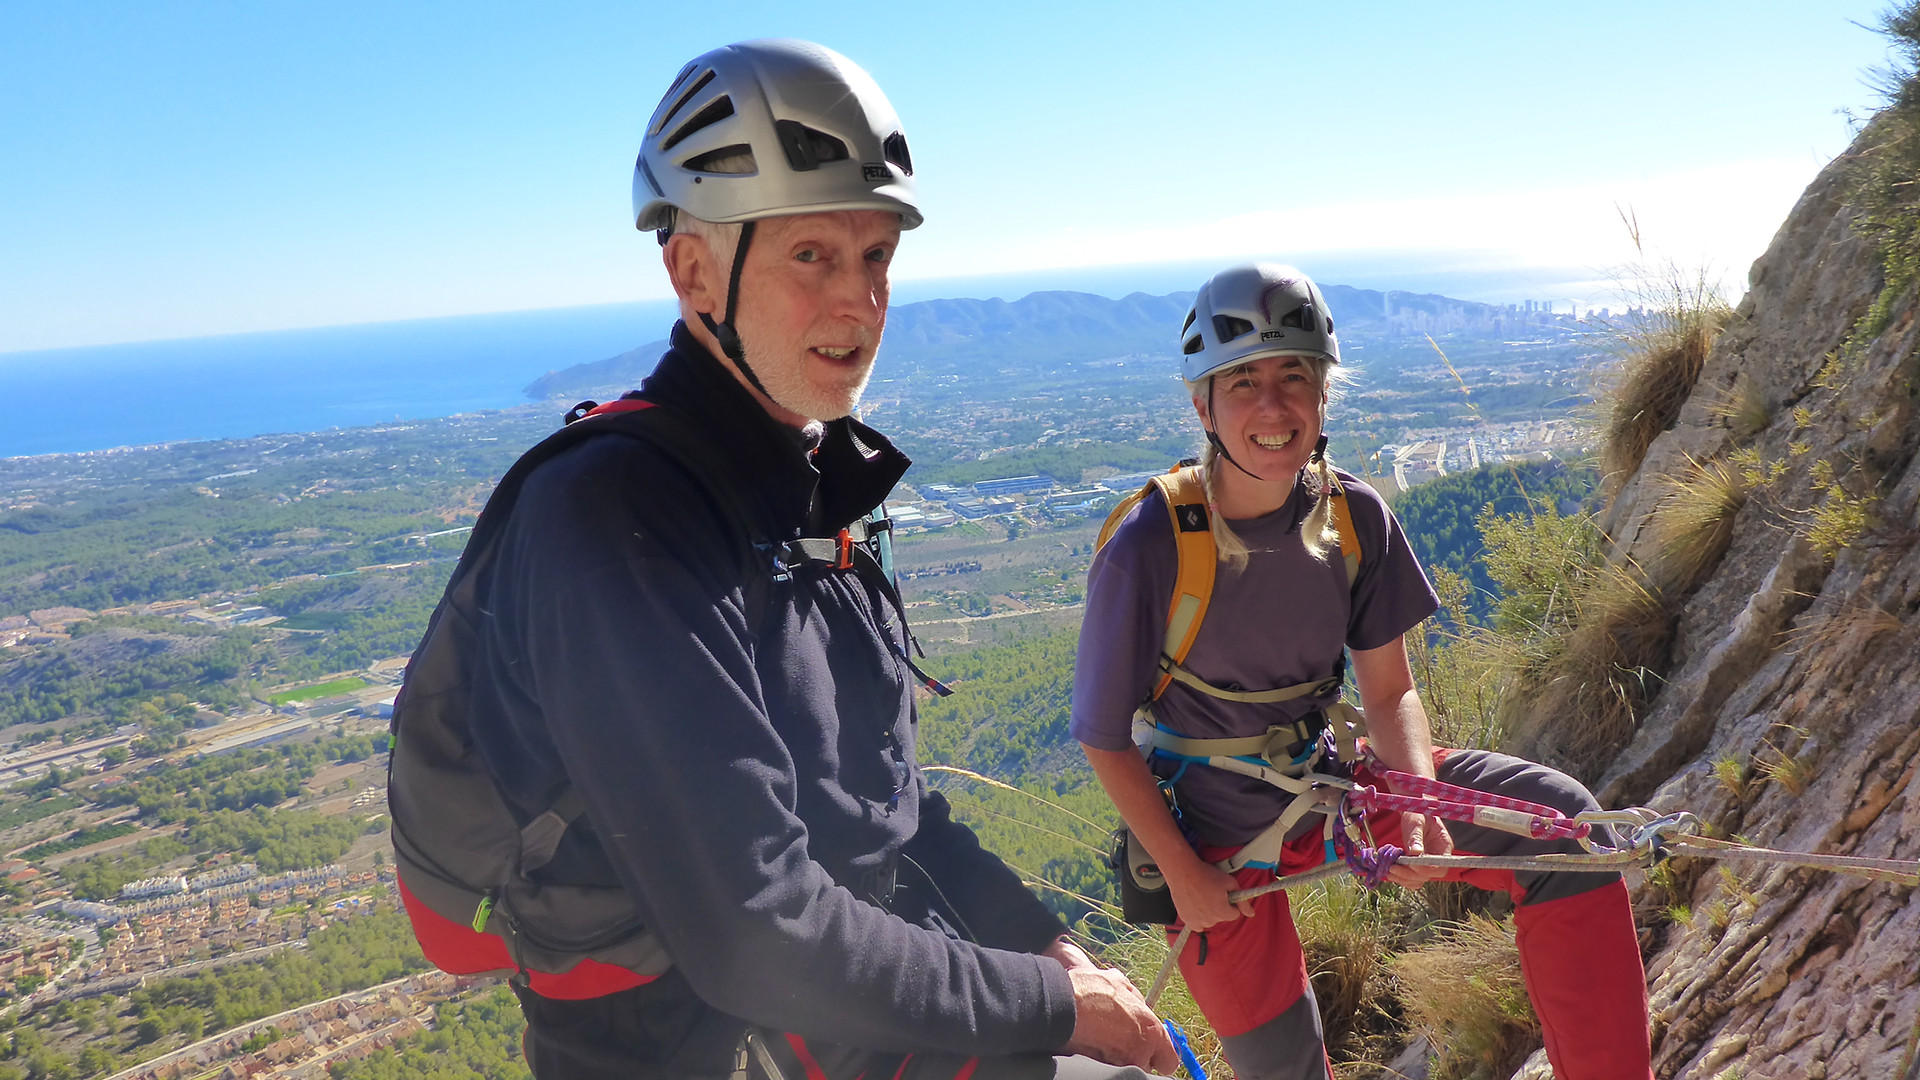 Guided Rock Climbing in Spain 2014